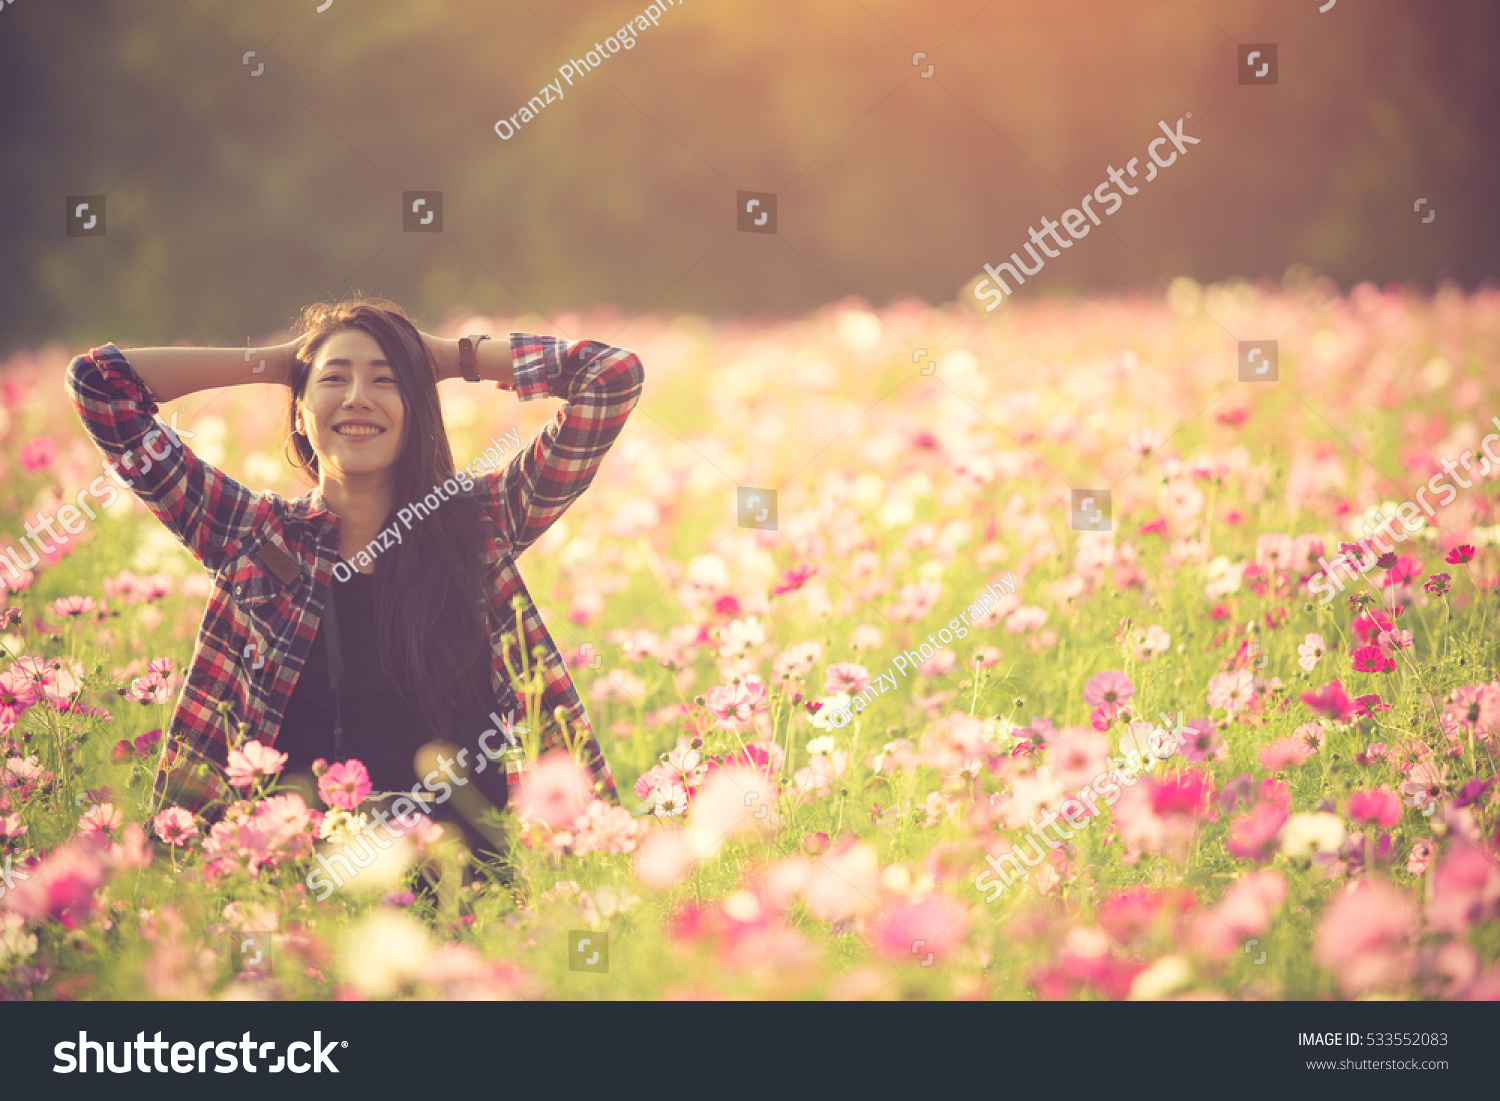 Free Photography Stock Free Happy Woman Enjoying Nature Beauty Stock Photo Edit Now